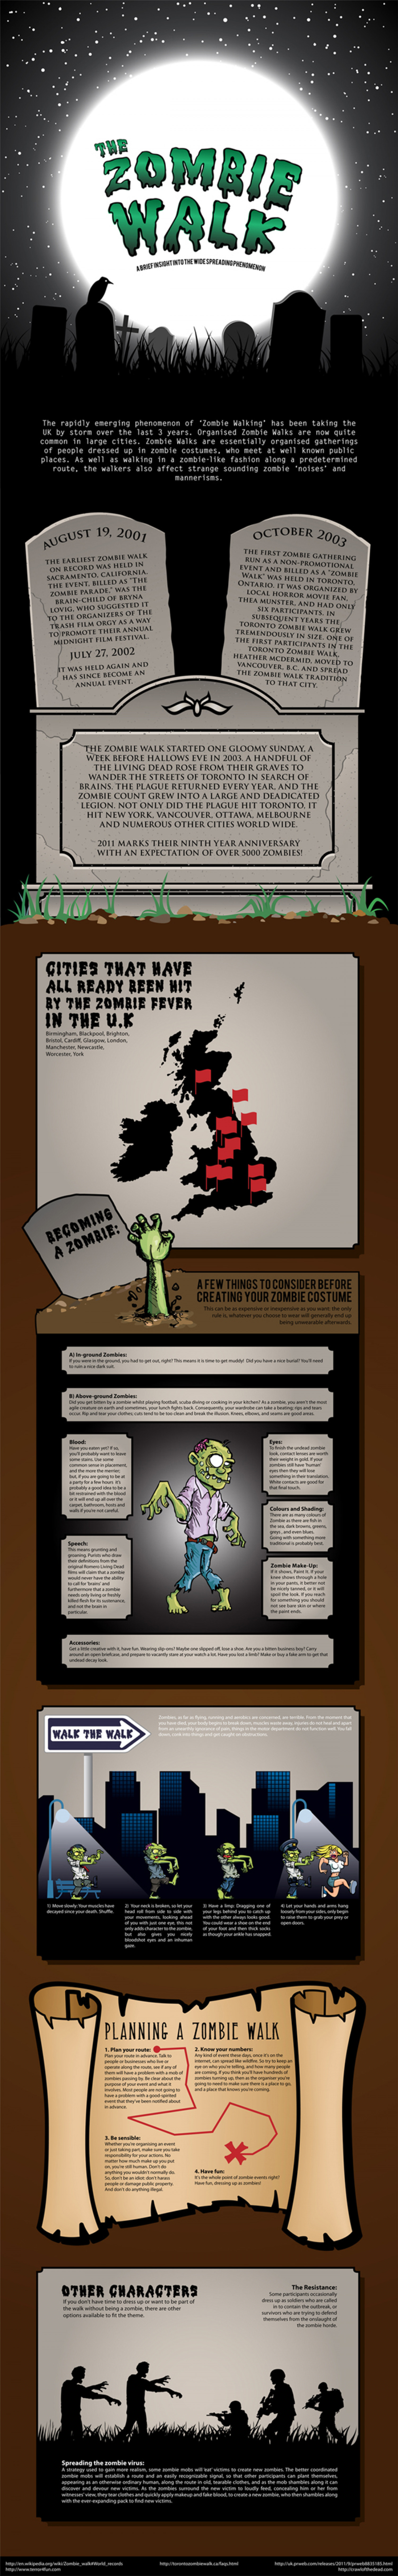 The History Of Zombie Walks Infographic